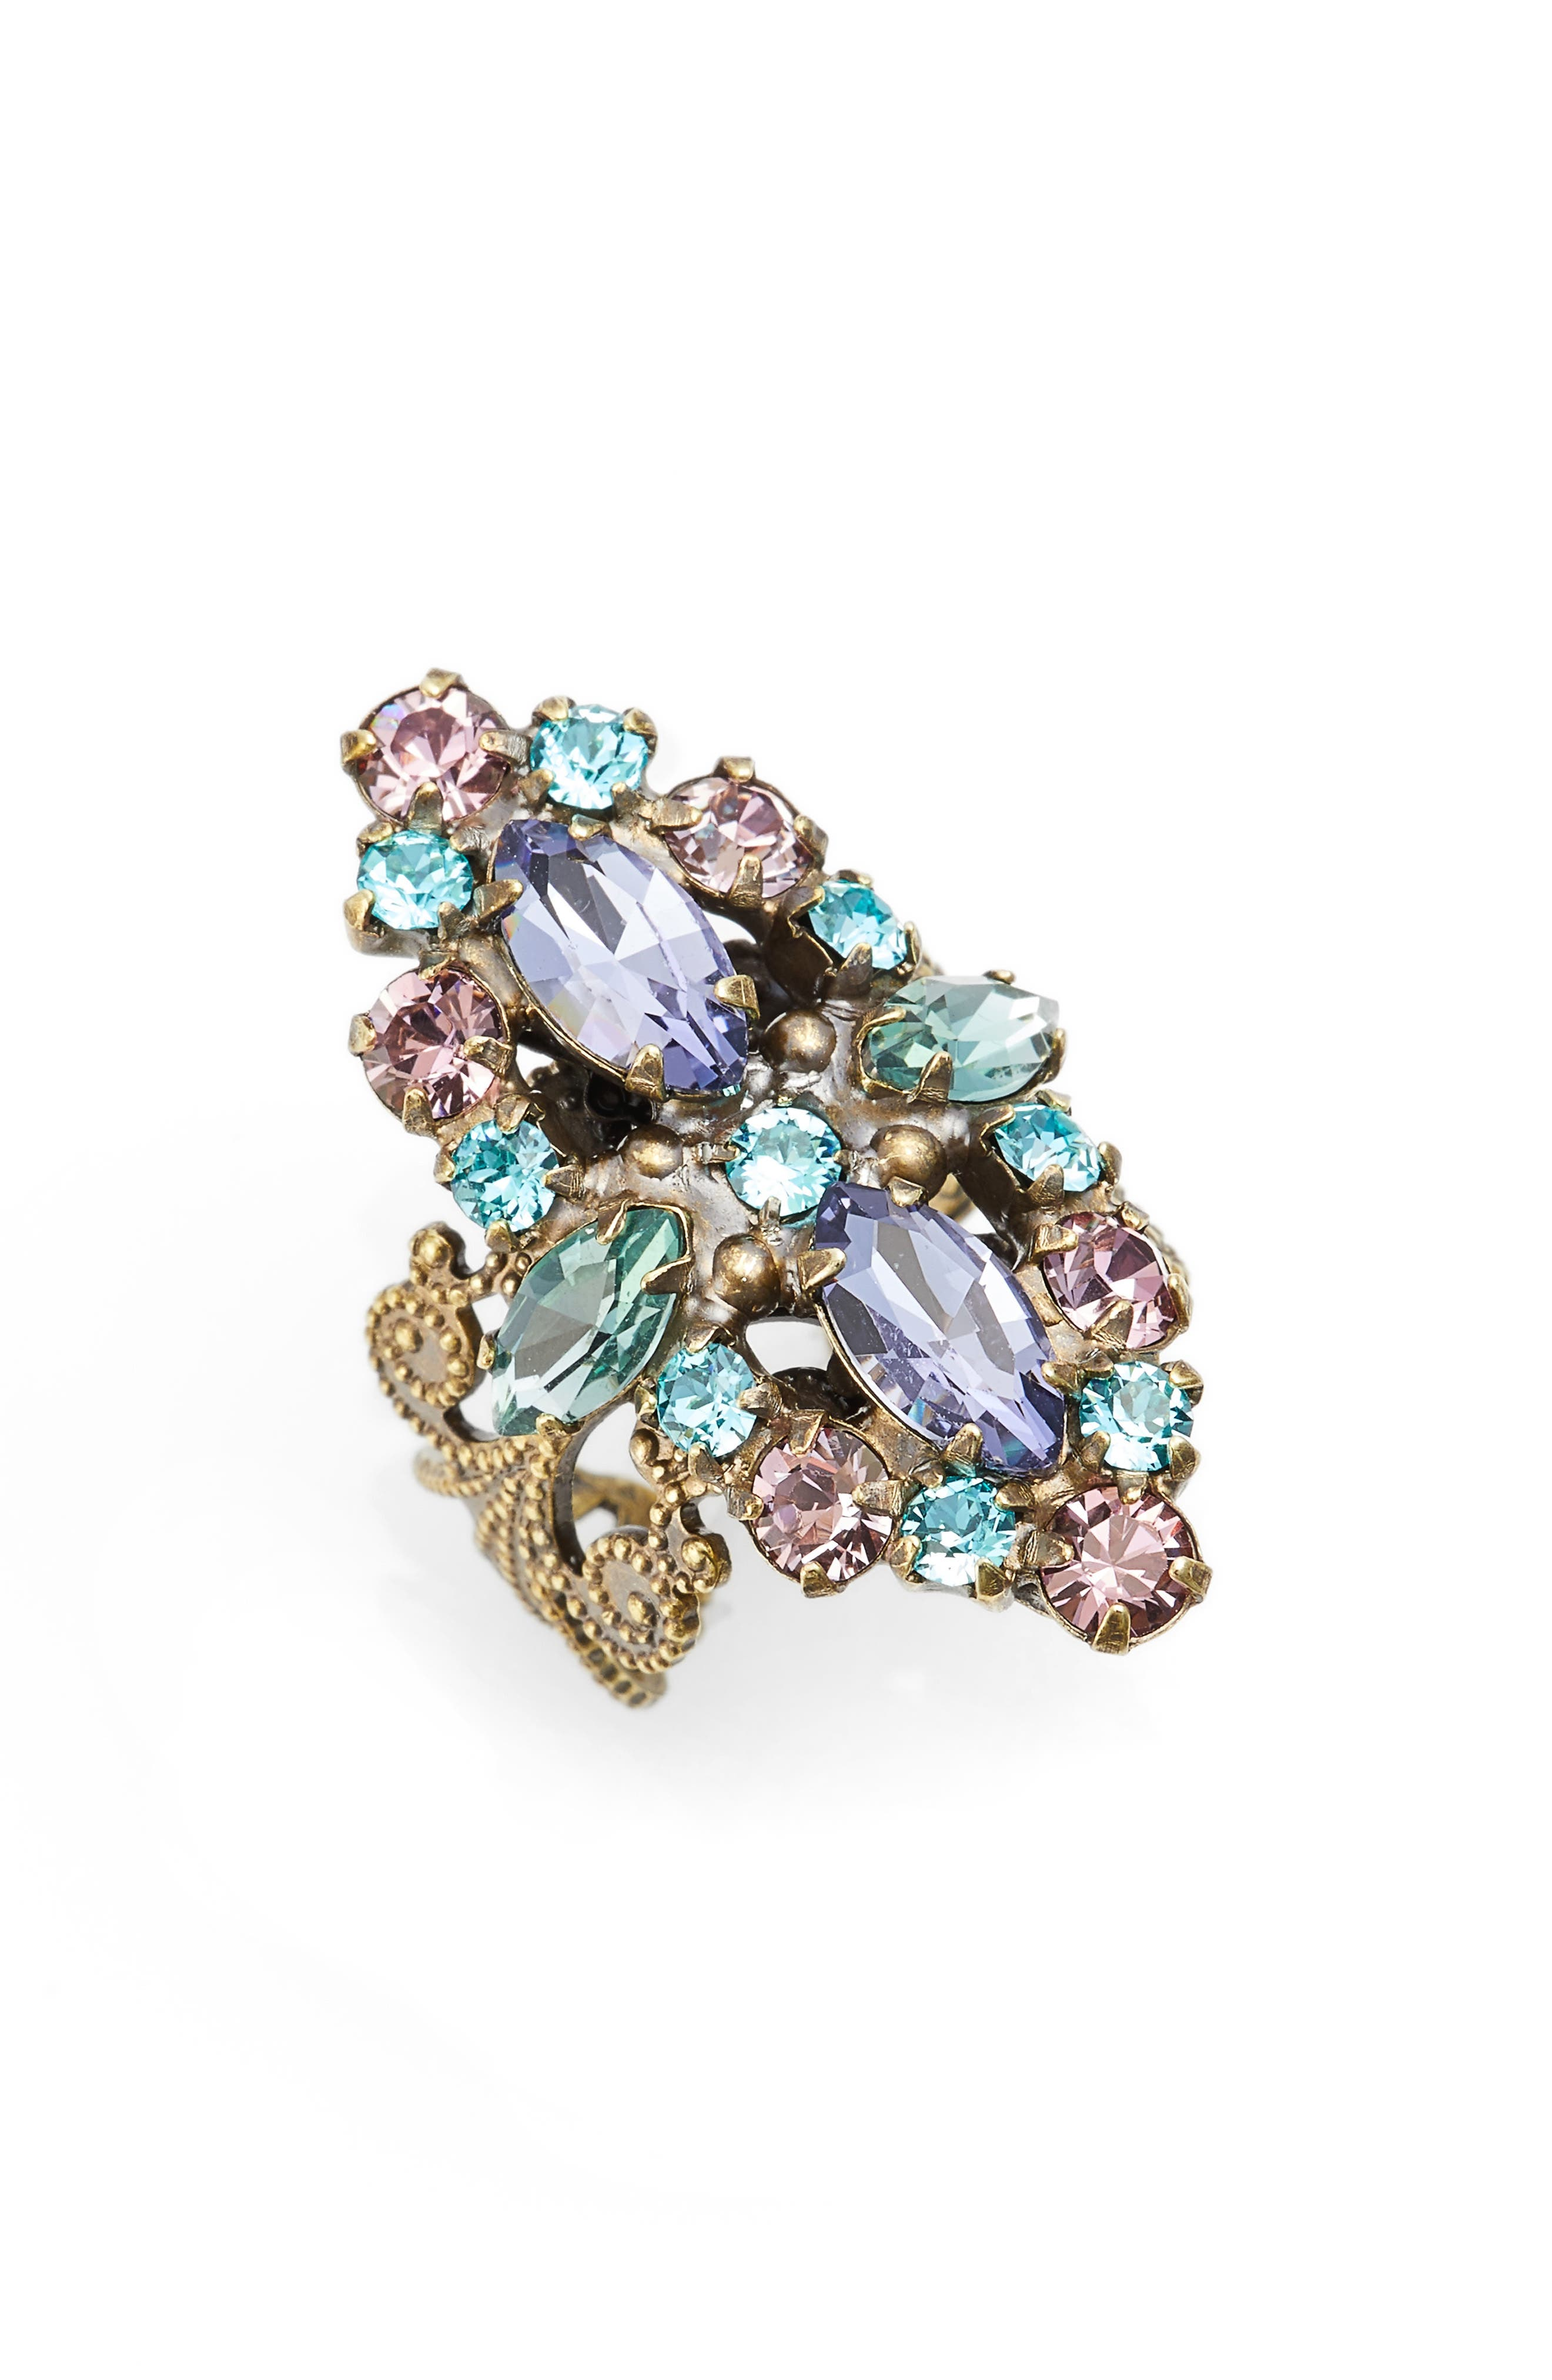 Edelweiss Crystal Cocktail Ring,                             Main thumbnail 1, color,                             Multi